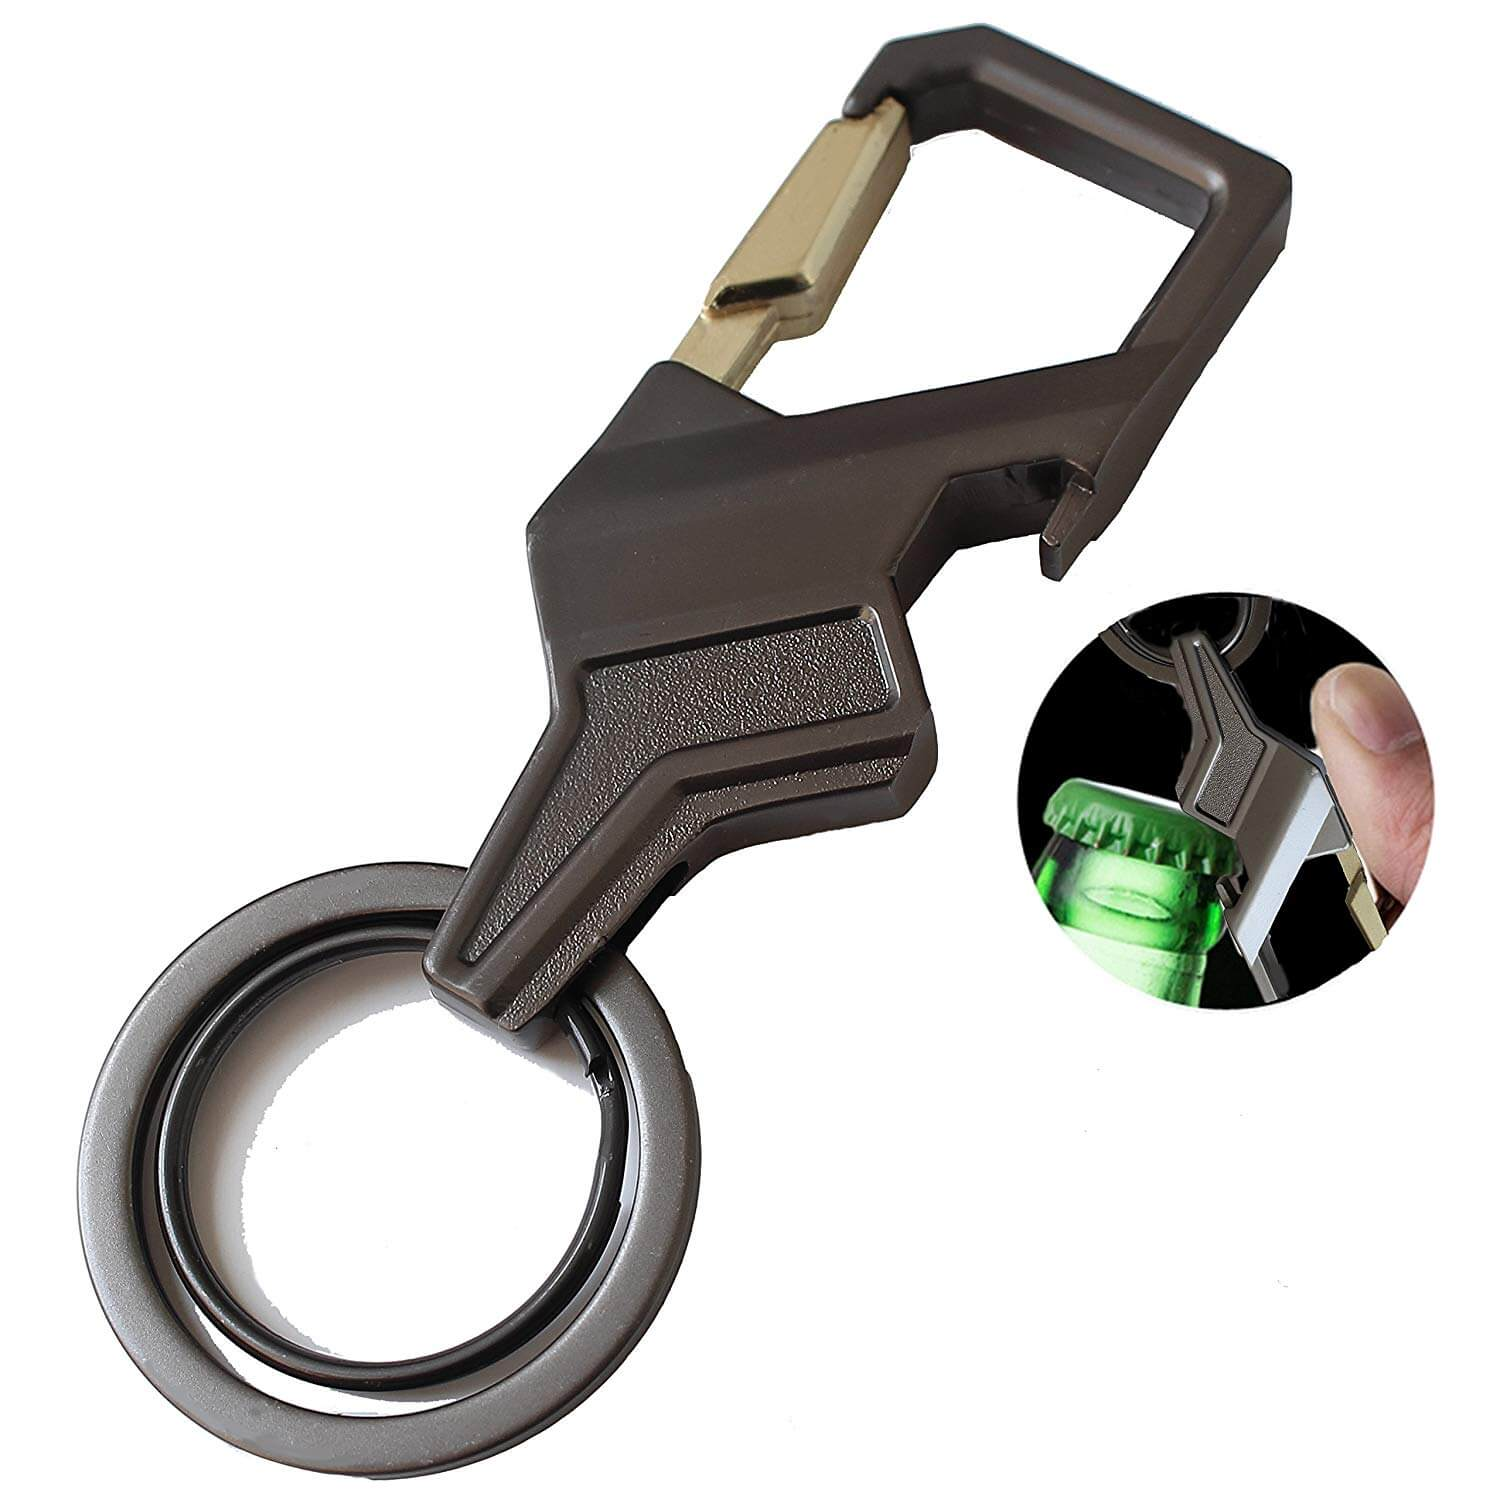 Stainless Steel Keychain with 2 Key Rings & Bottle Opener